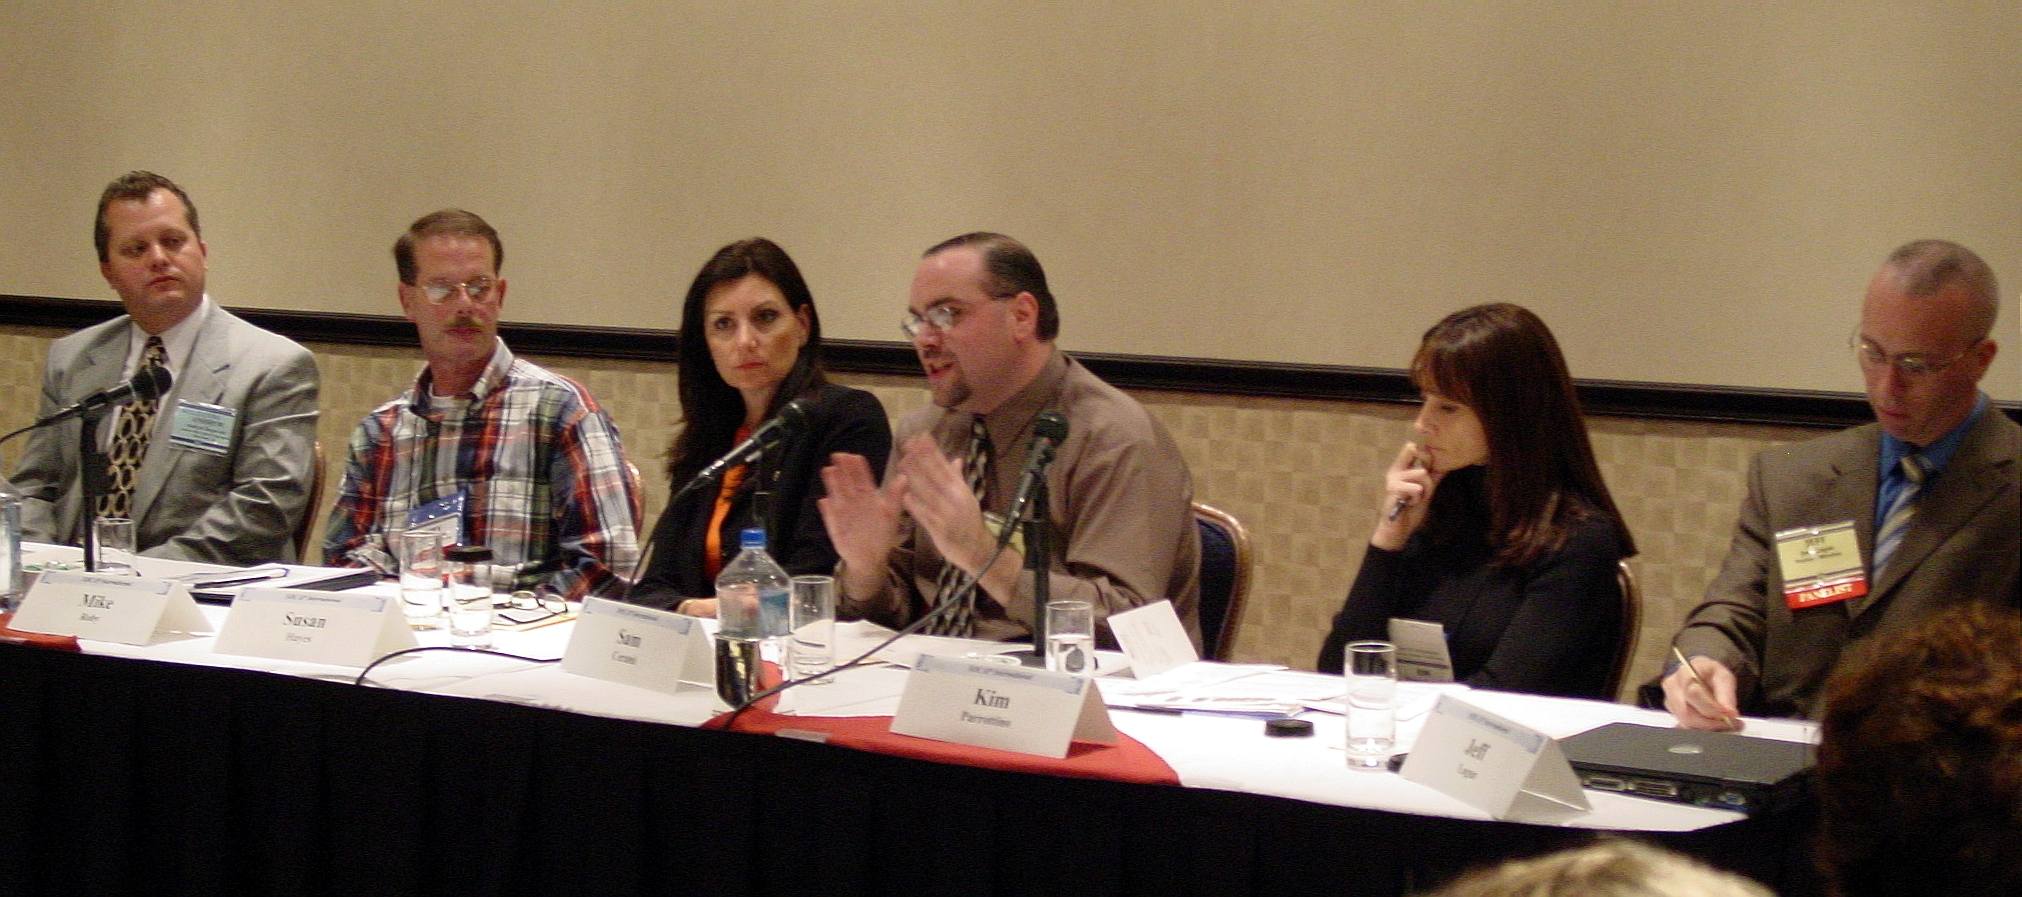 SOCAP, holdcom 2004 socap panel discussion, on hold panel discussion, socap conference